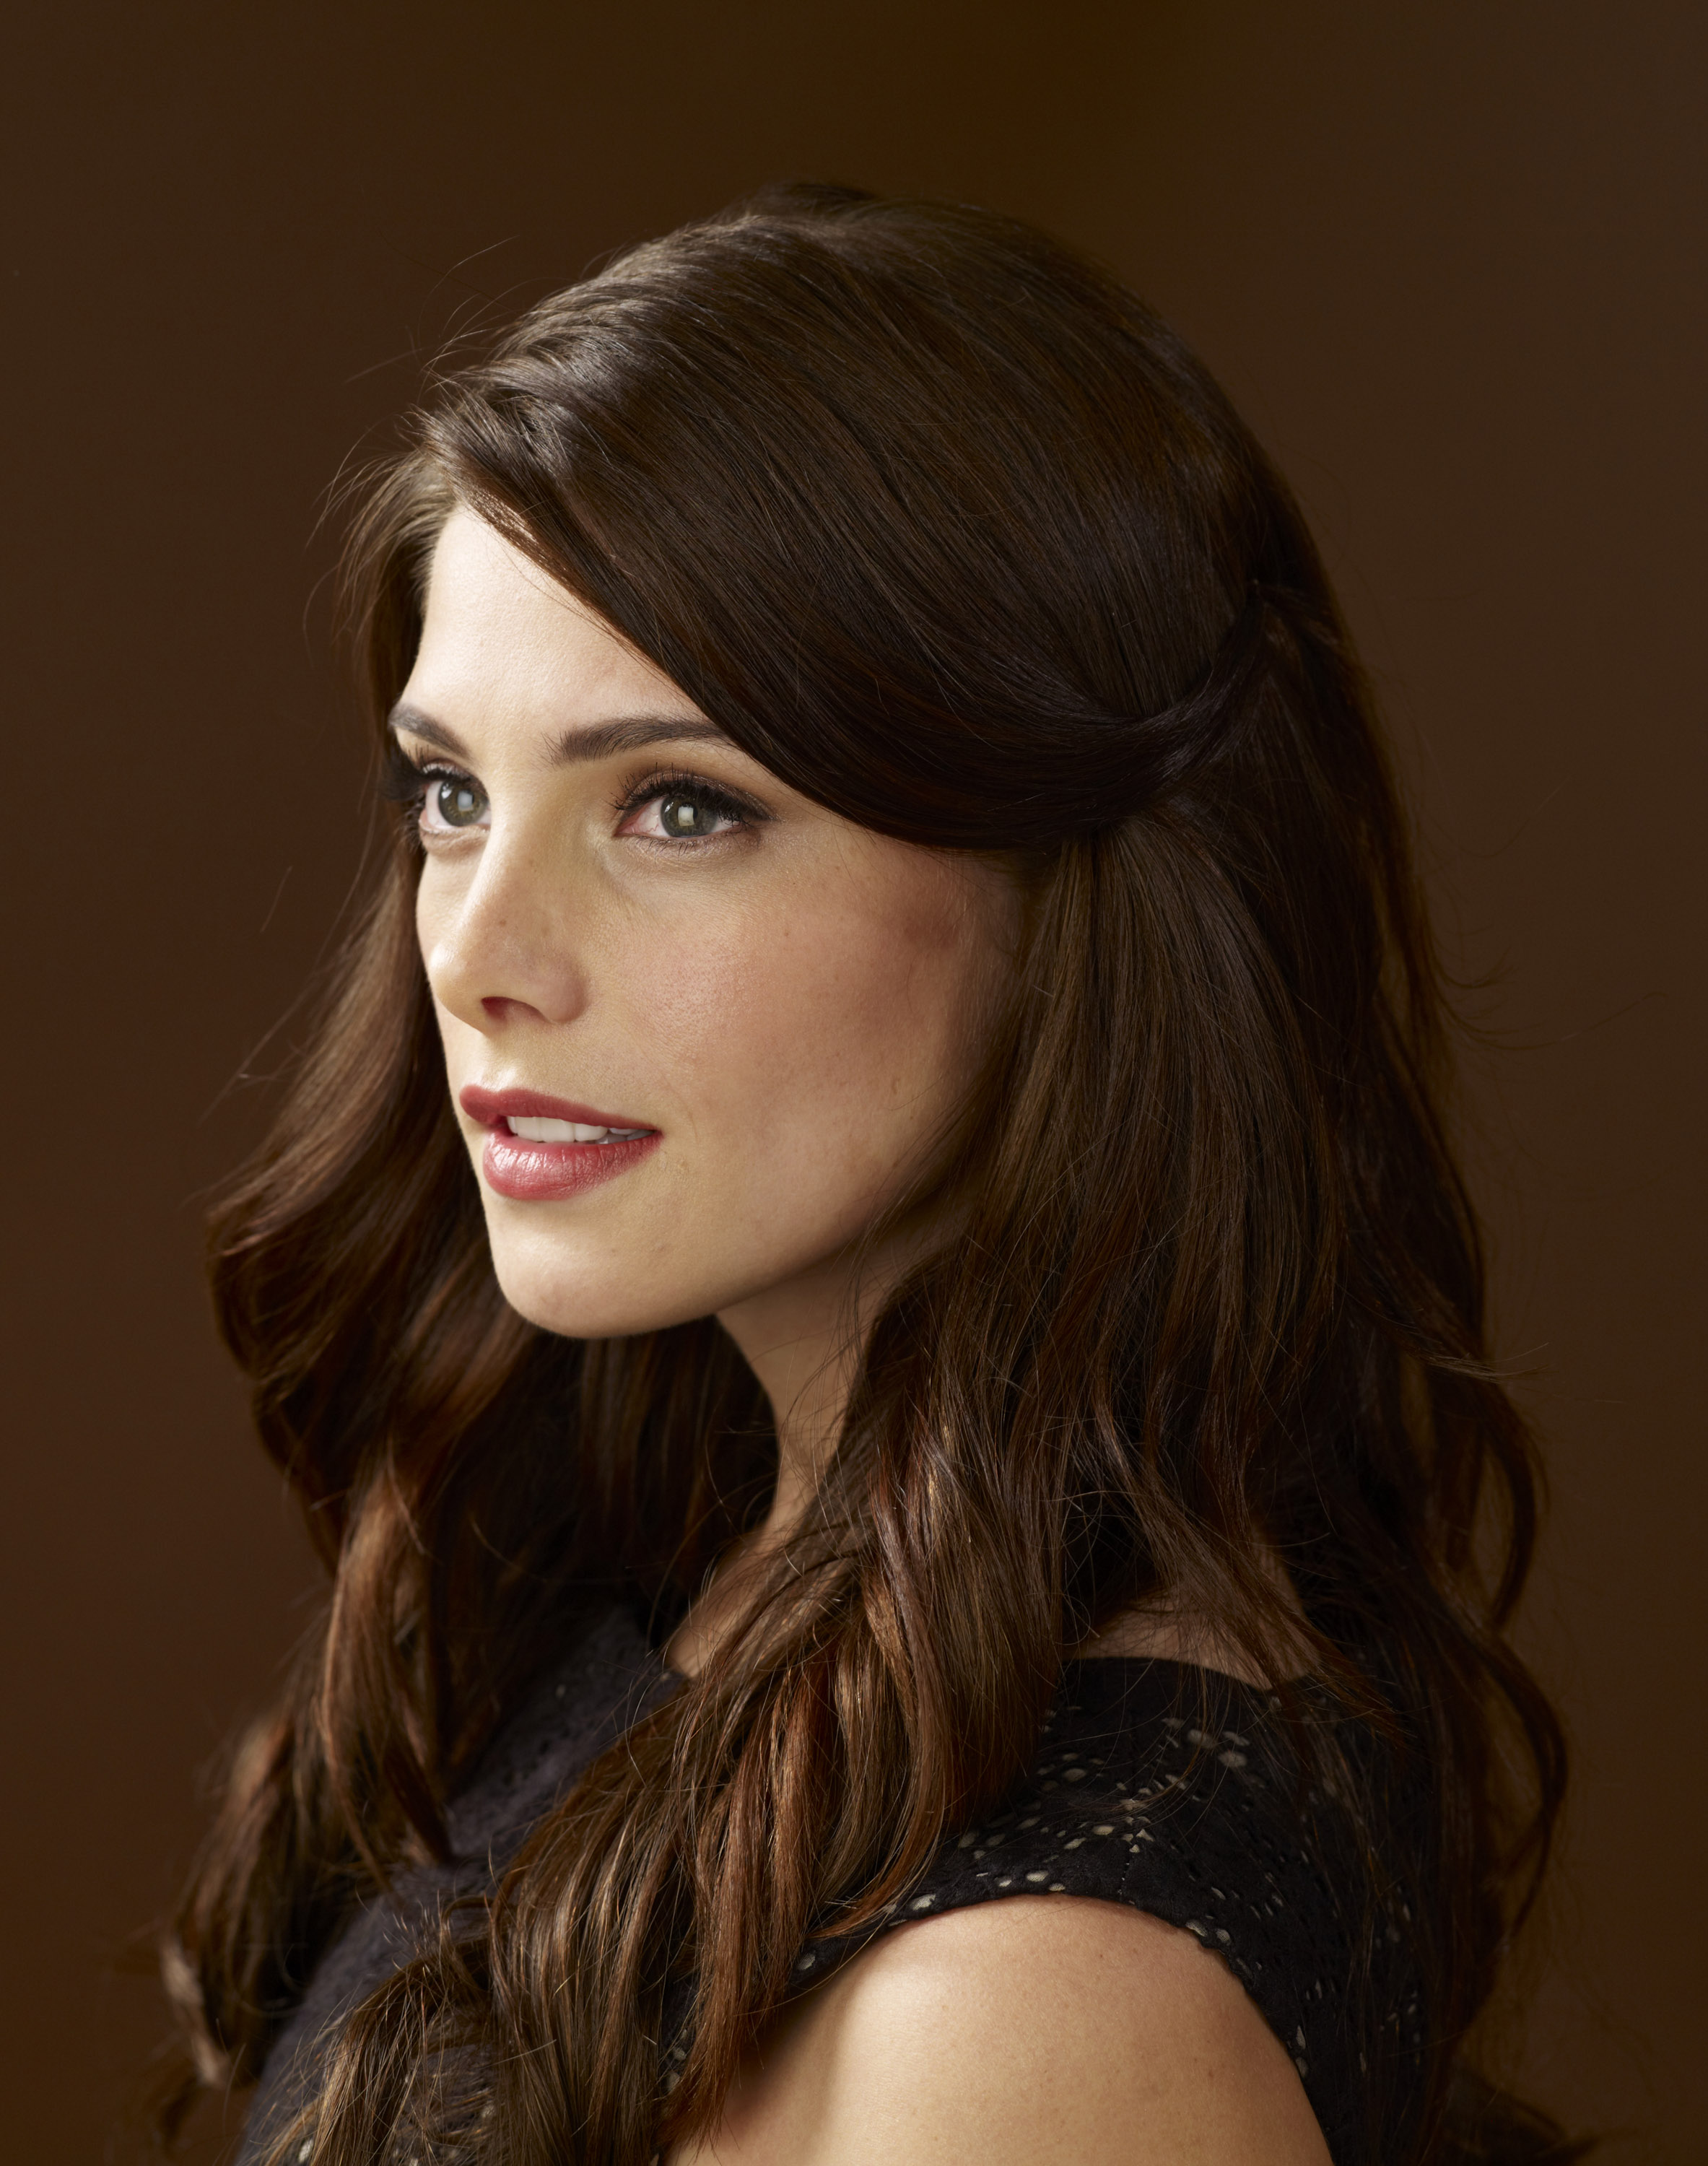 """HQ editions of Ashley's TIFF """"Butter"""" Portraits - 2011."""